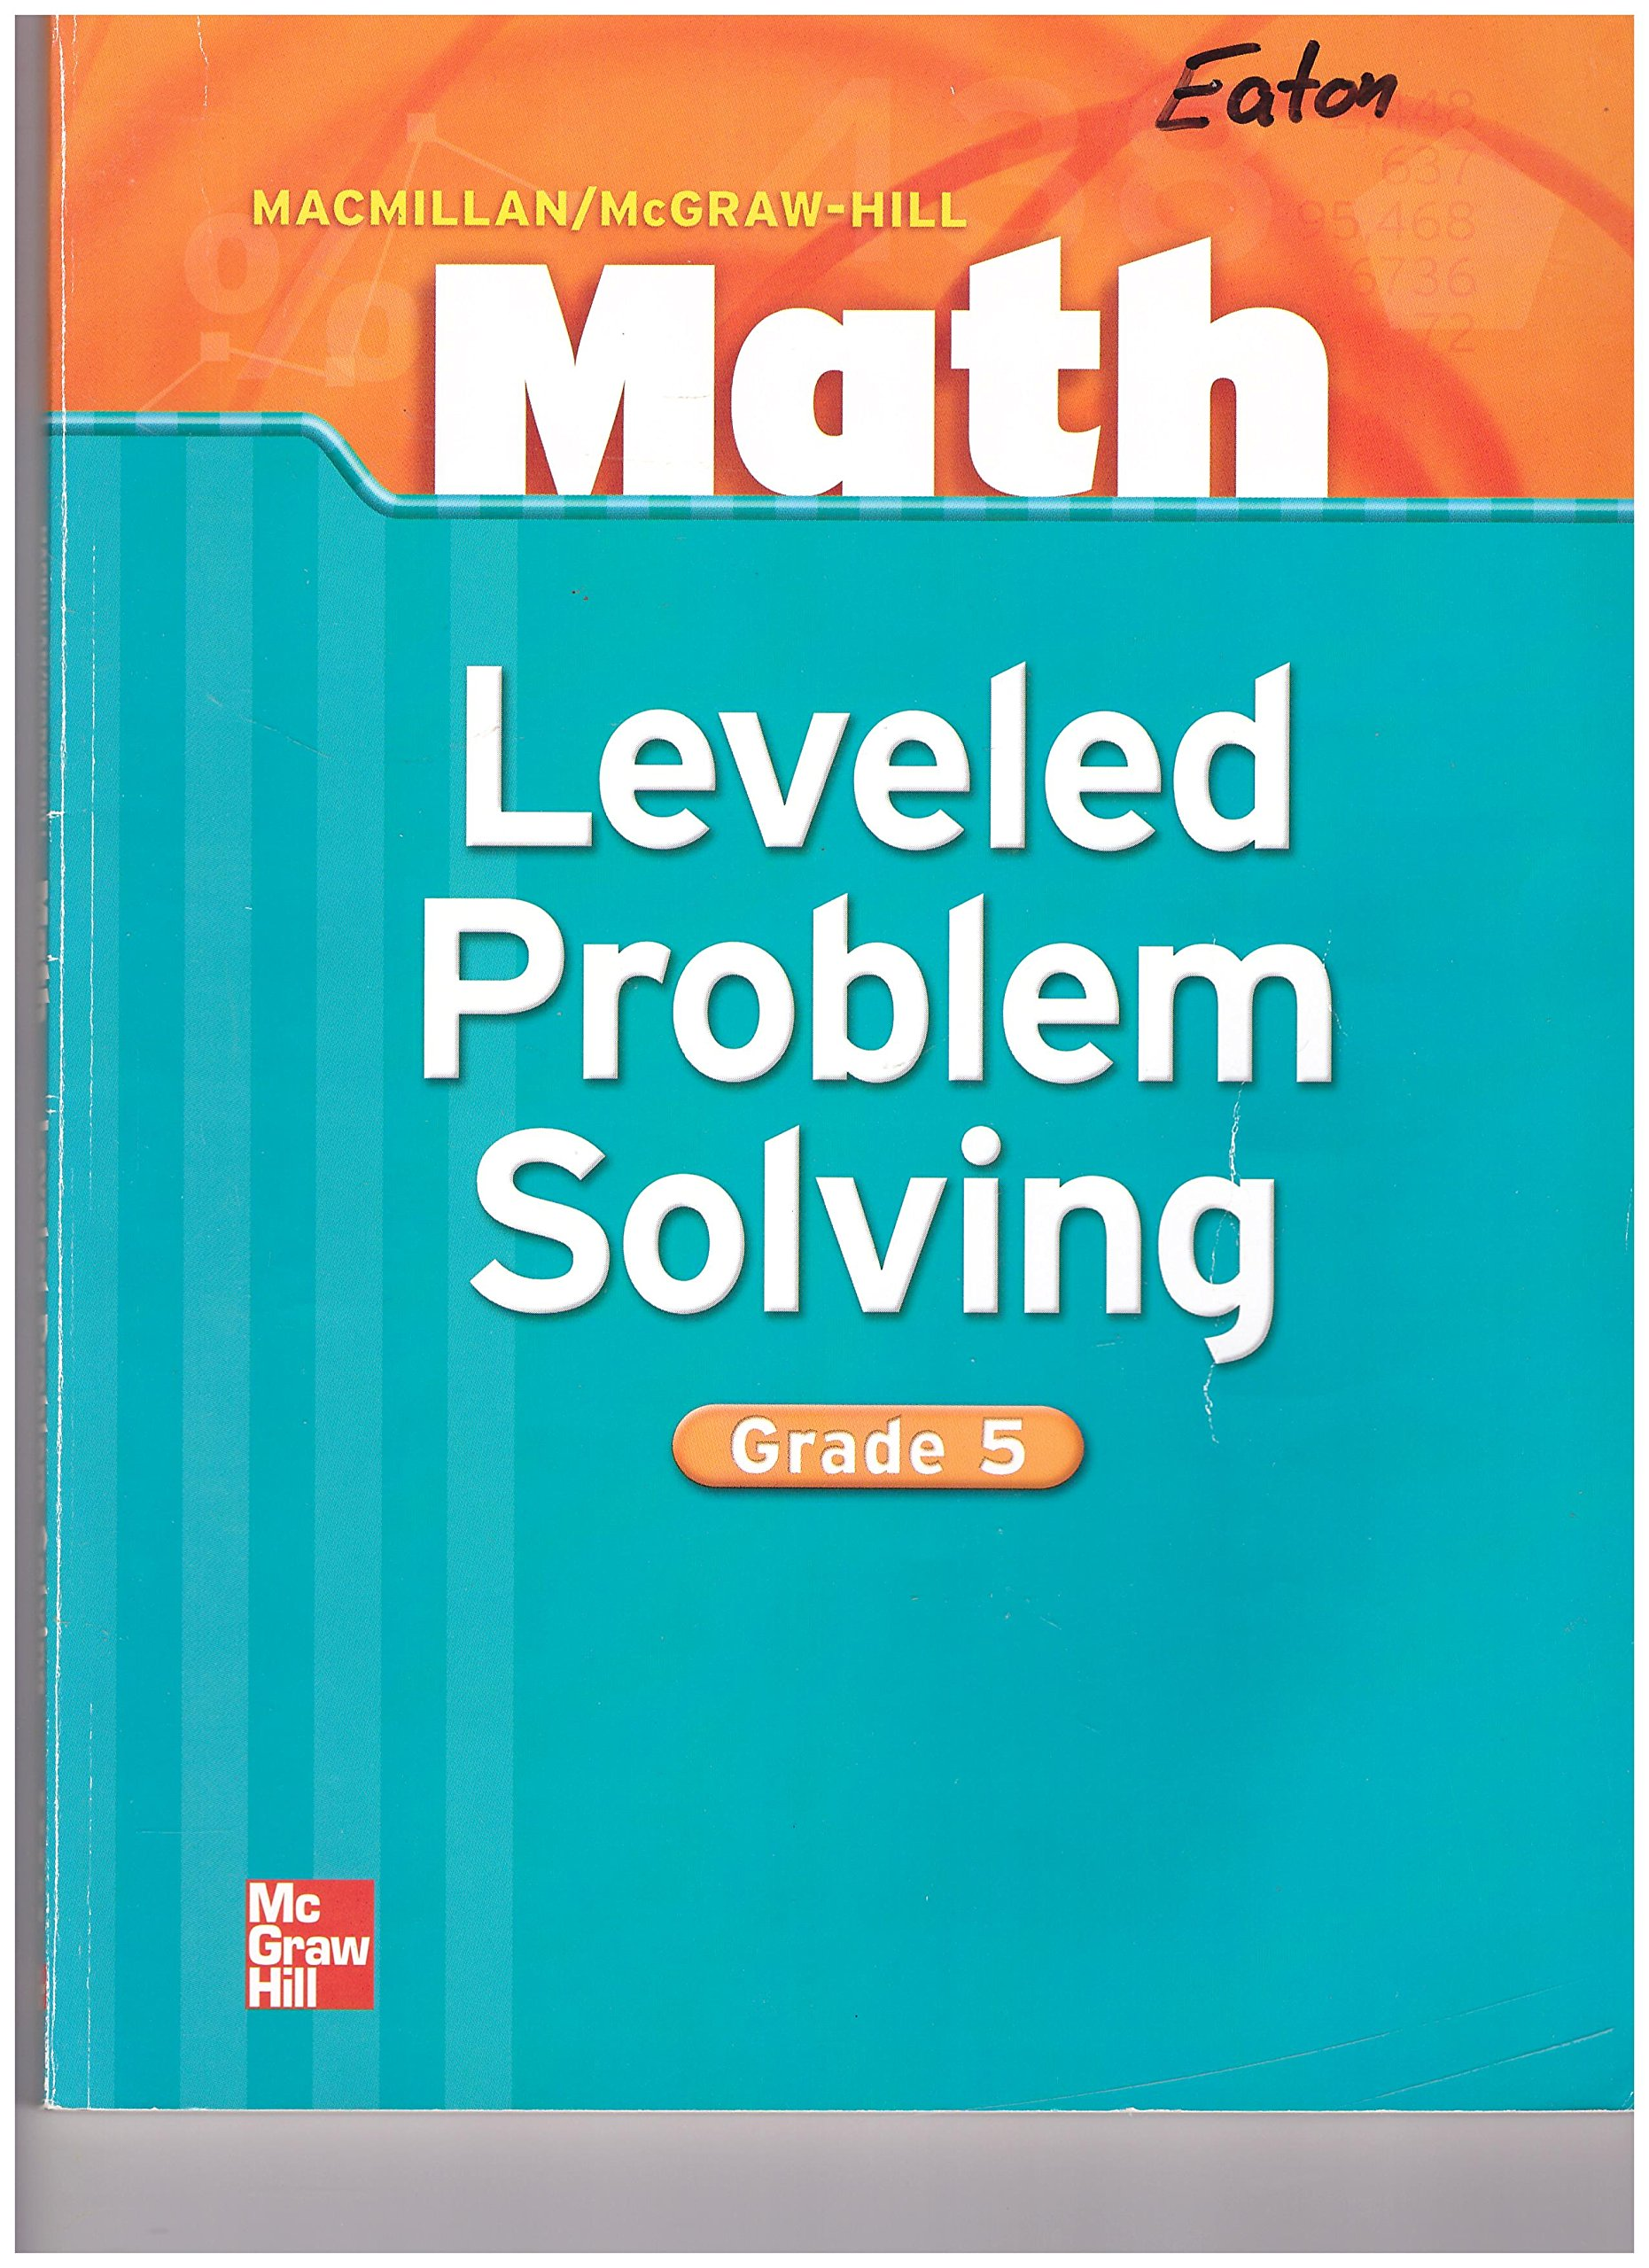 Macmillan/mcgraw-hill Math Leveled Problem Solving (Grade 5) 2004 pdf